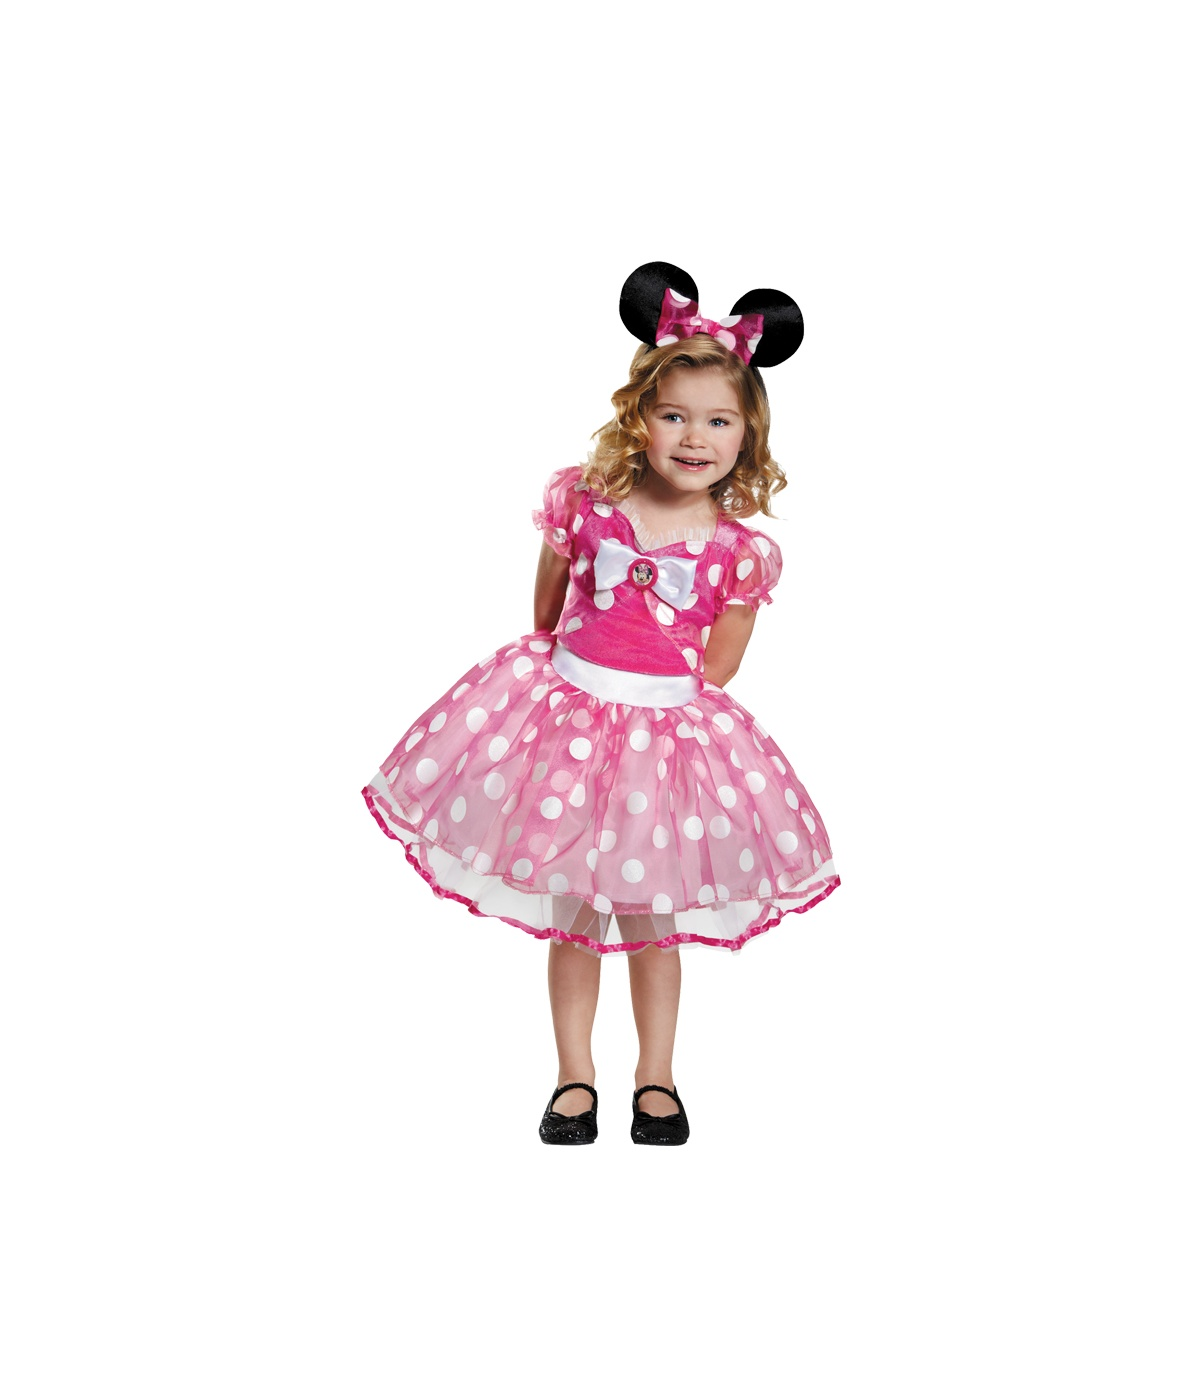 Pink Minnie Mouse Girls Tutu Dress Costume Accessories